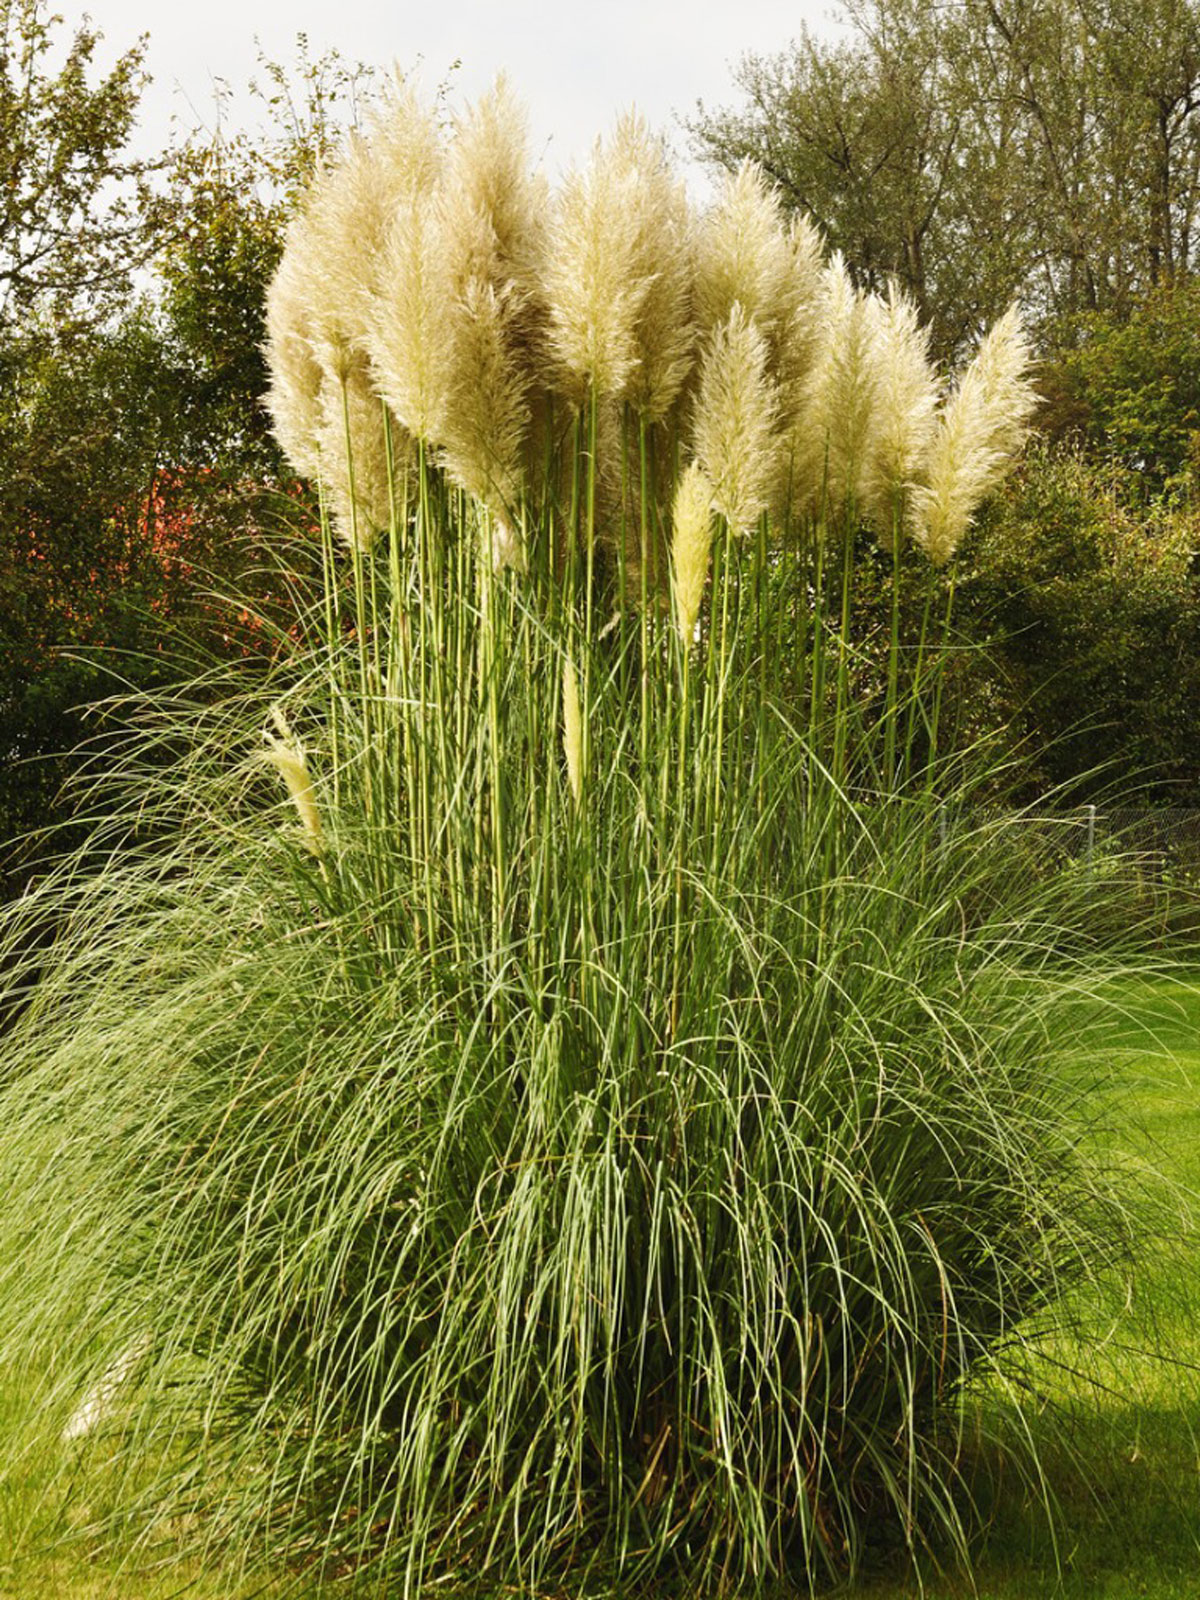 How To Transplant Pampas Grass Tips For Transplanting Pampas Grass